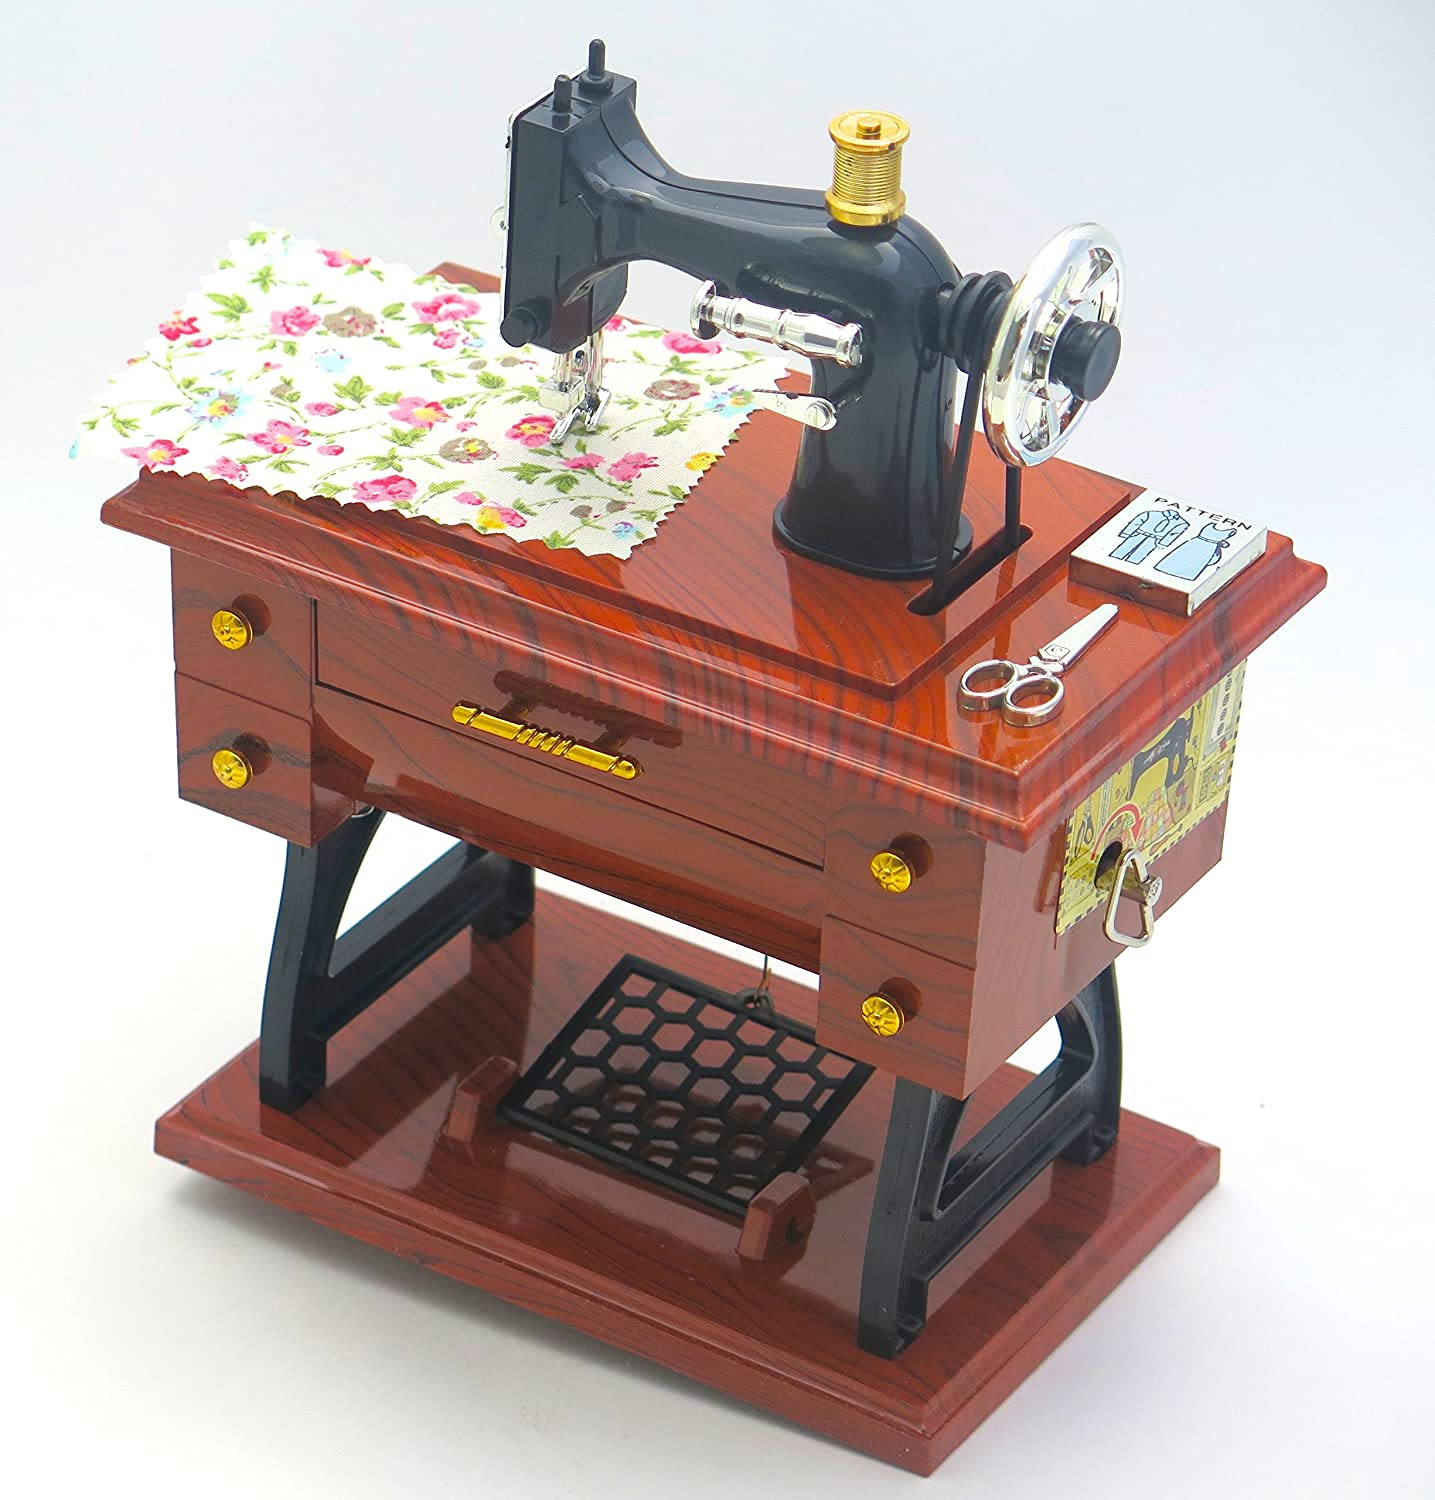 fashion designer moms birthday grandmas birthday mothers day. Sewing Machine jewelry music boxes wonderful gift for collection